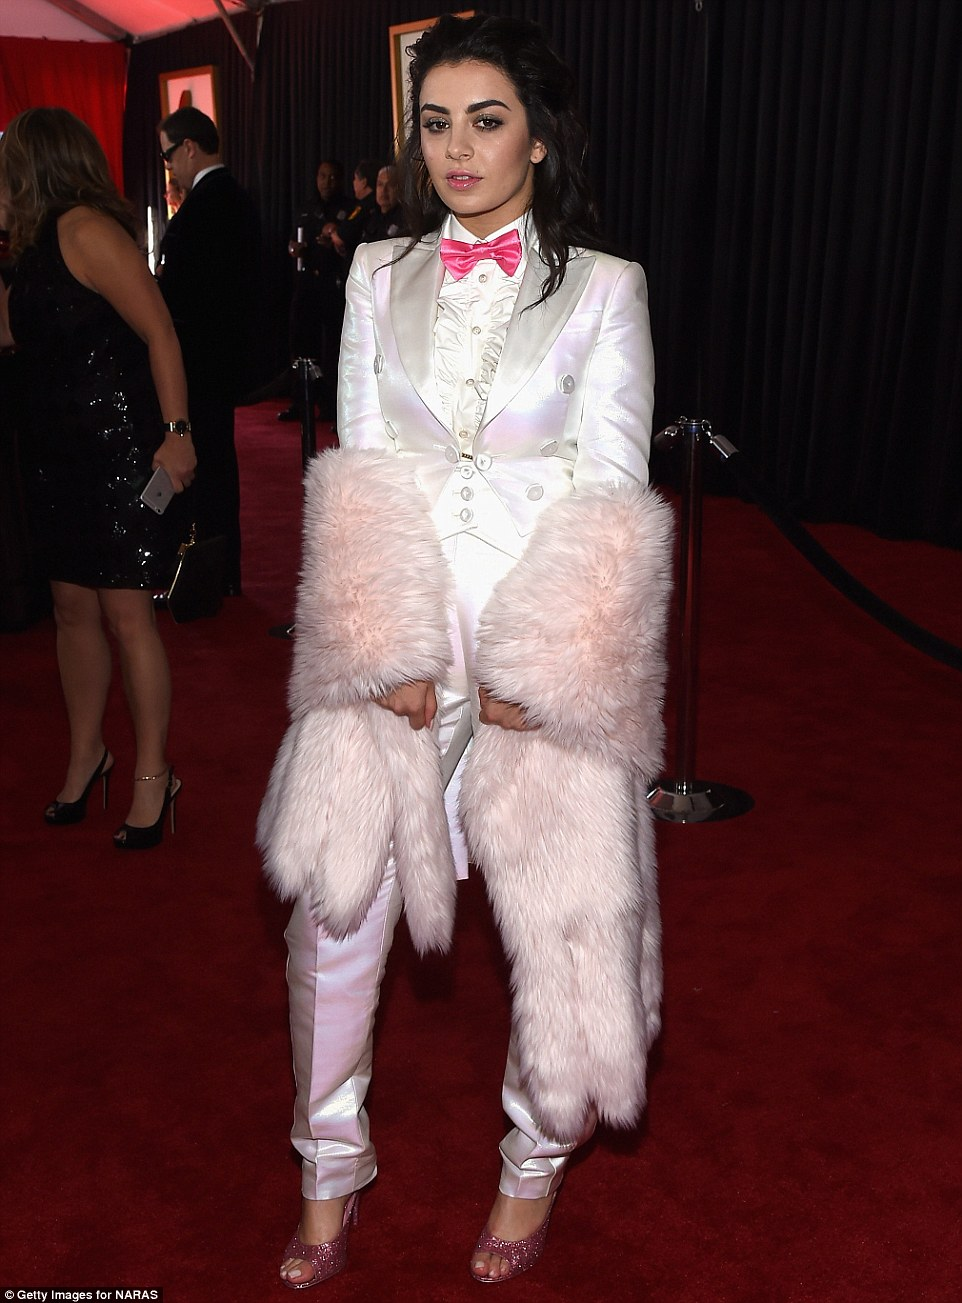 257BCFD200000578-2945246-Faux_pas_British_crooner_Charli_XCX_22_turned_up_in_a_shiny_Pink-m-34_1423444480020